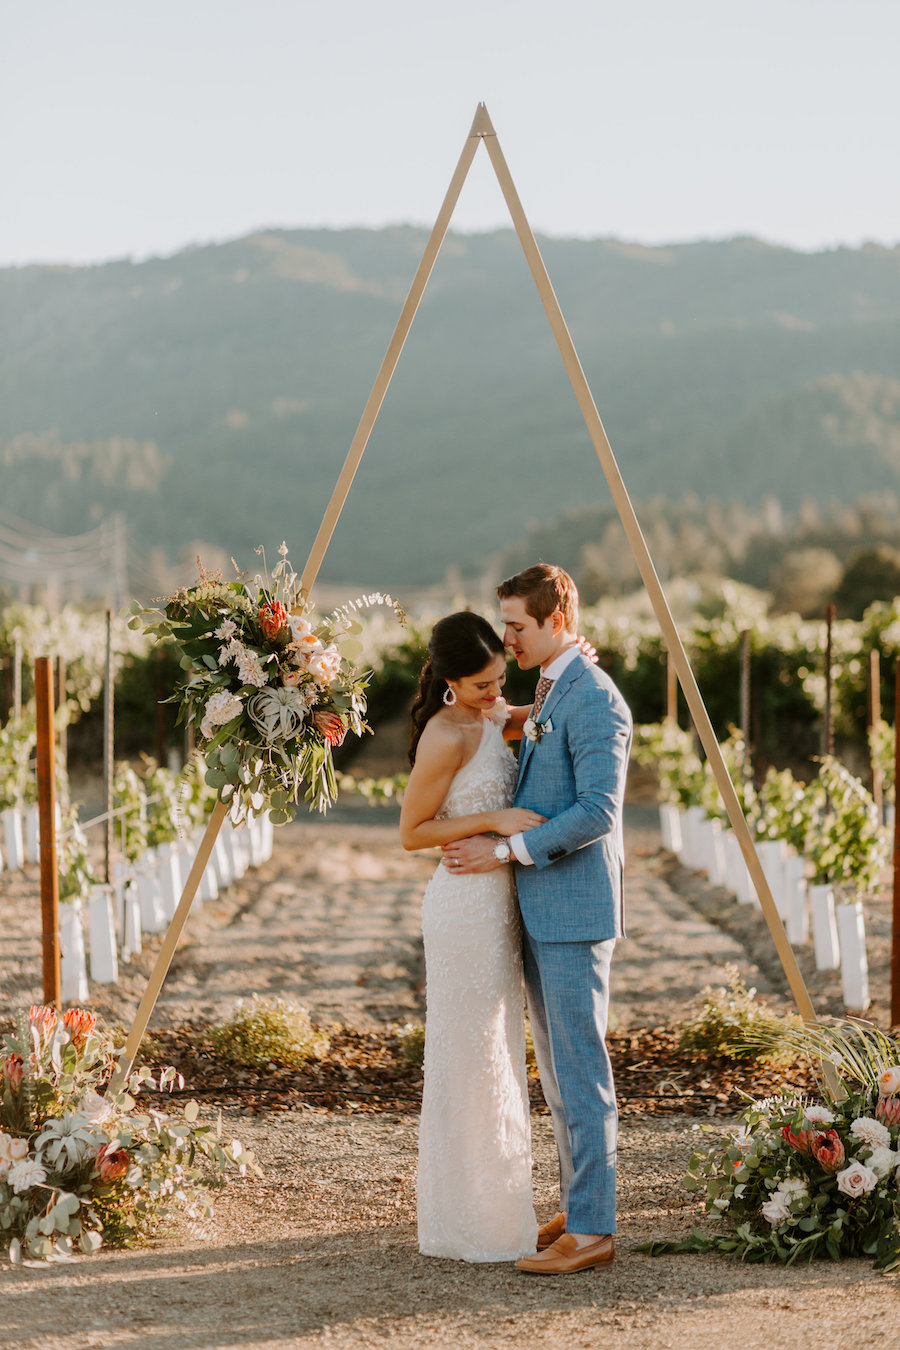 Desert-Inspired Napa Valley Wedding Featured on BRIDES18.jpg